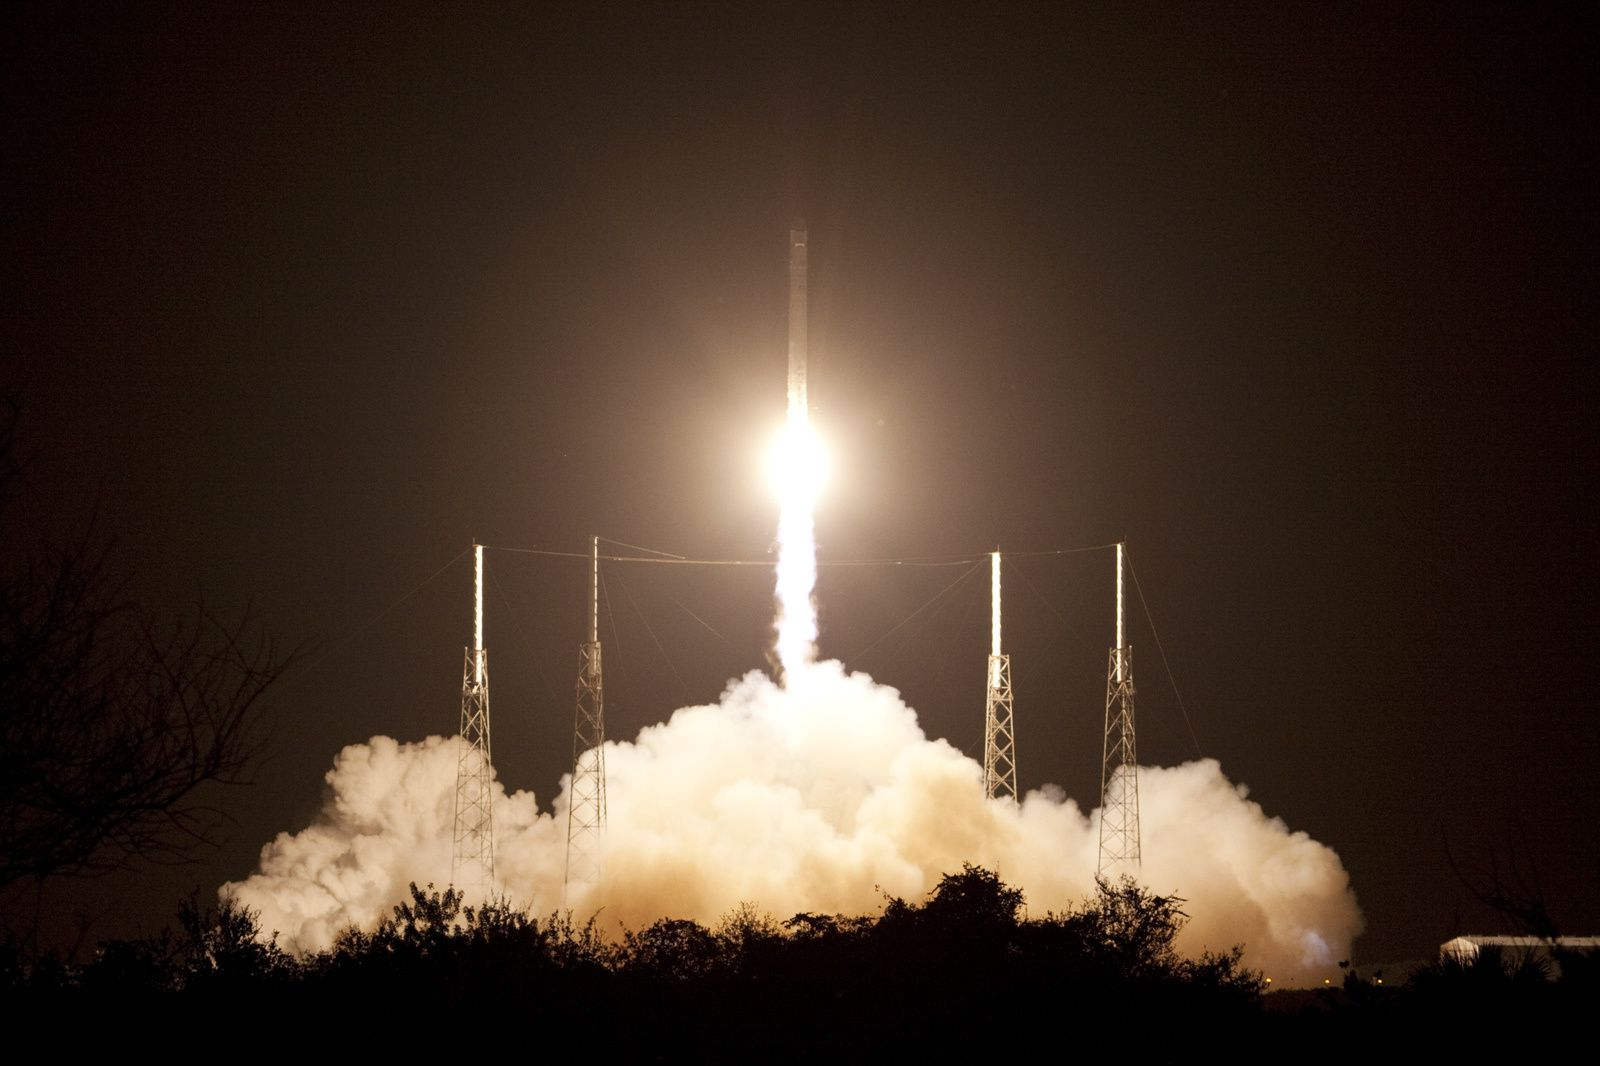 The SpaceX CRS-1 Falcon 9 launches on 8 October 2012.